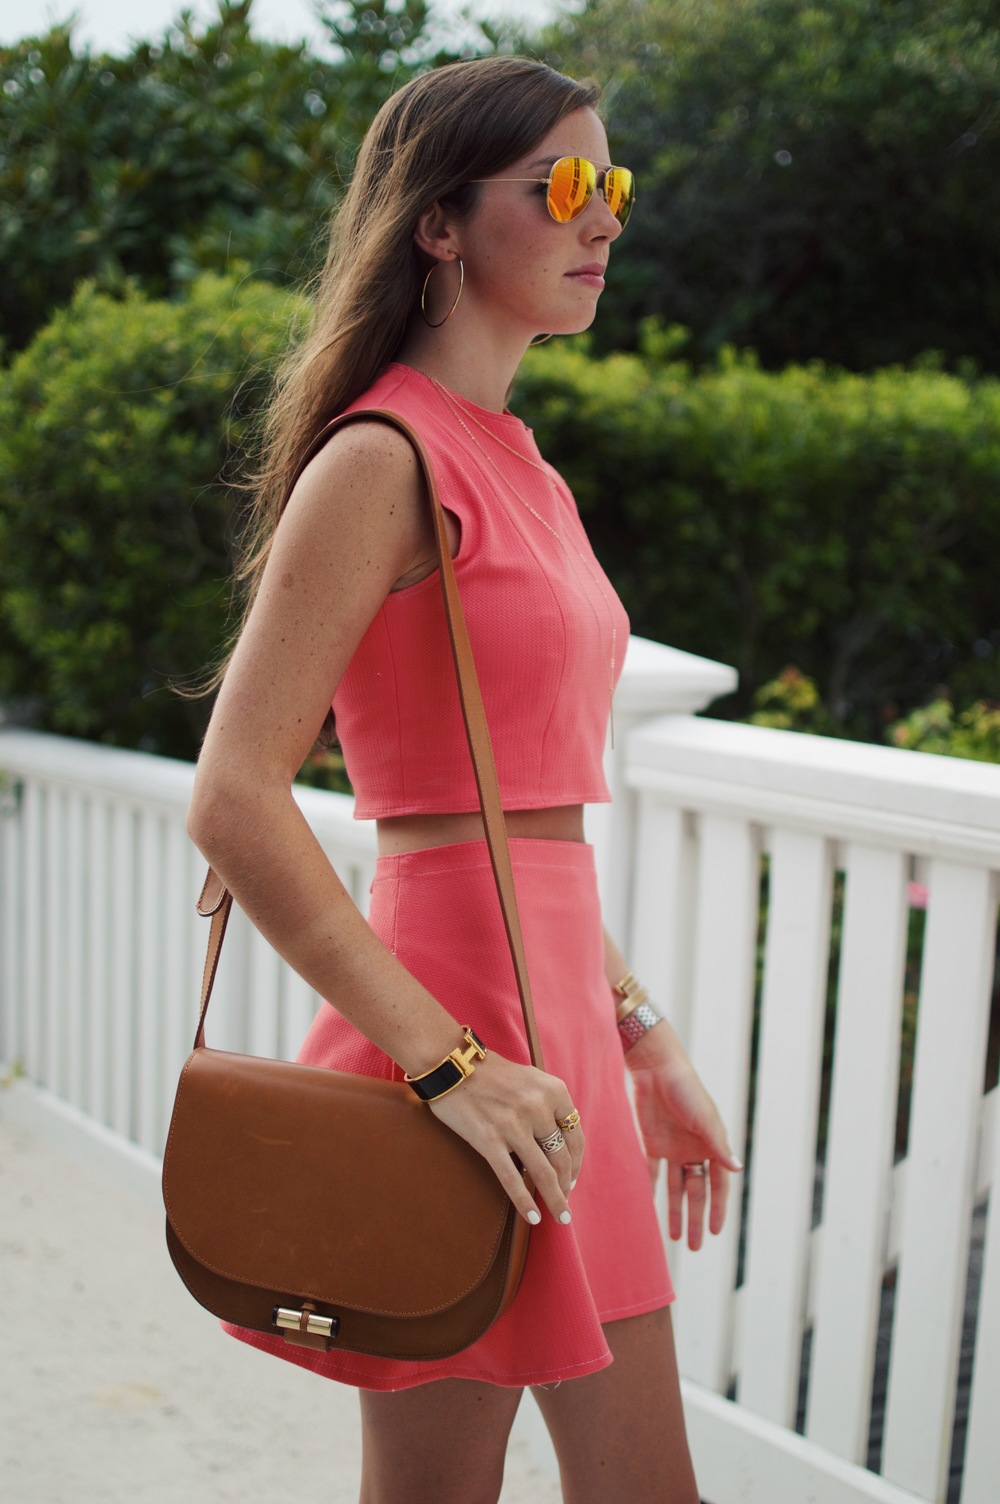 designs by lcb coral two piece14.JPG